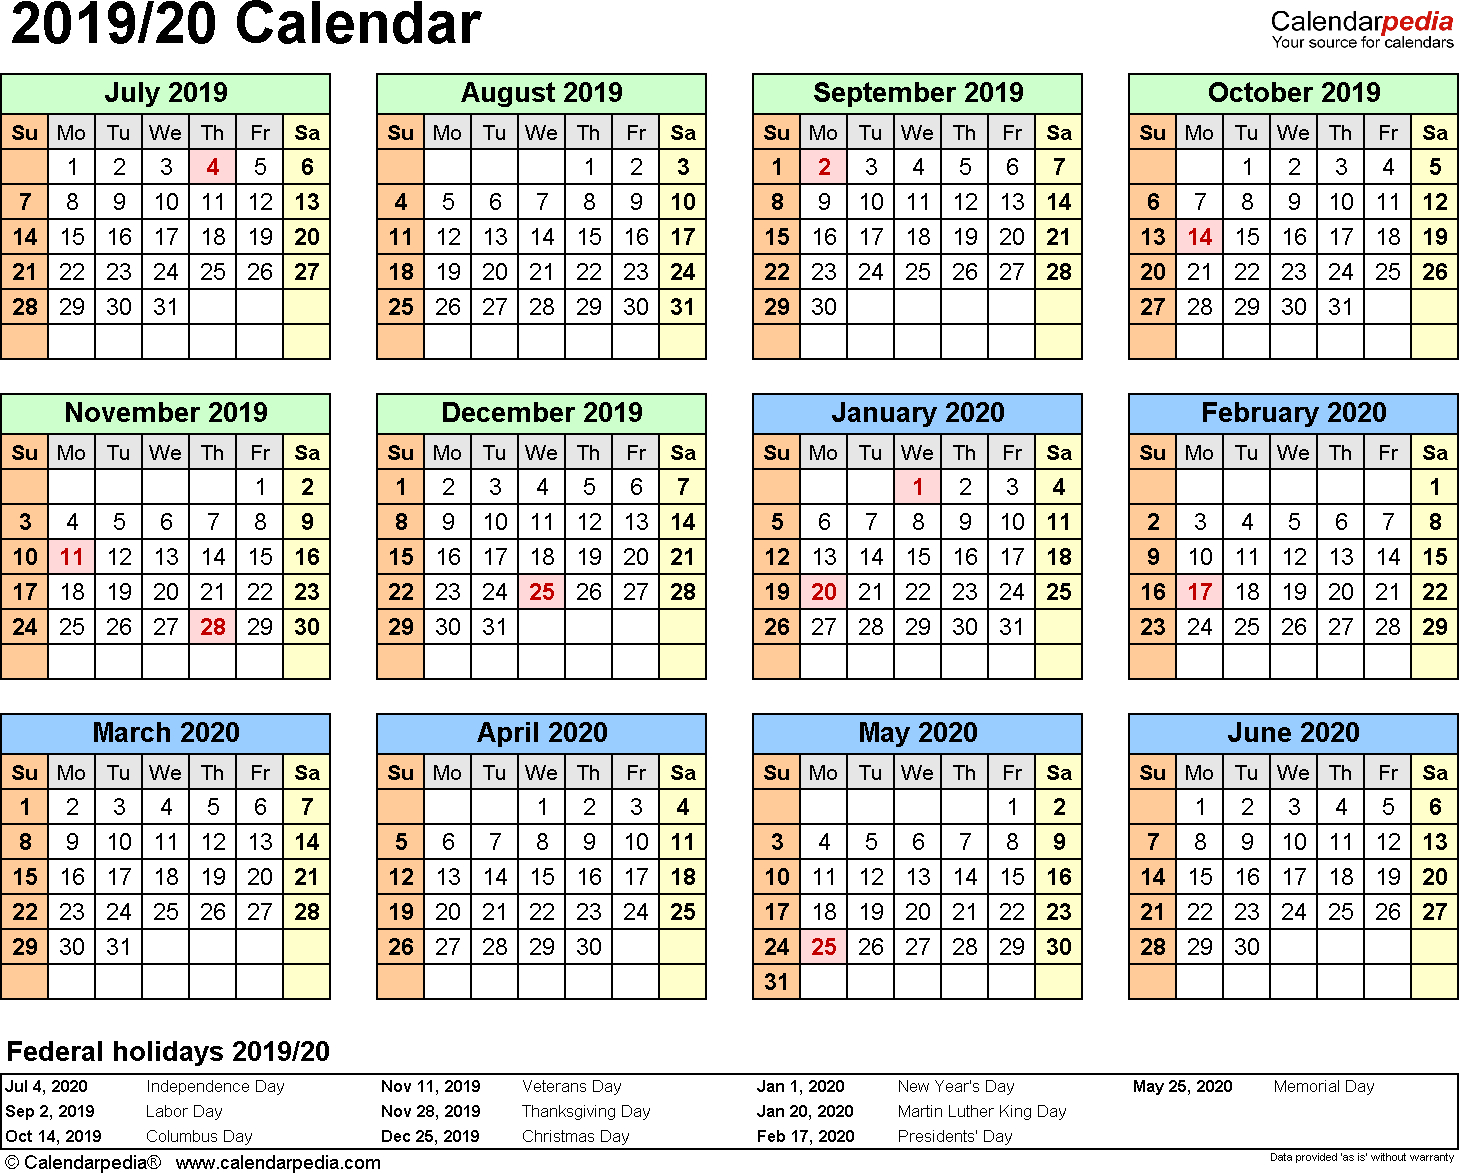 Split Year Calendar 2019/20 (July To June) - Excel Templates intended for Year At A Glance 2019 2020 Free